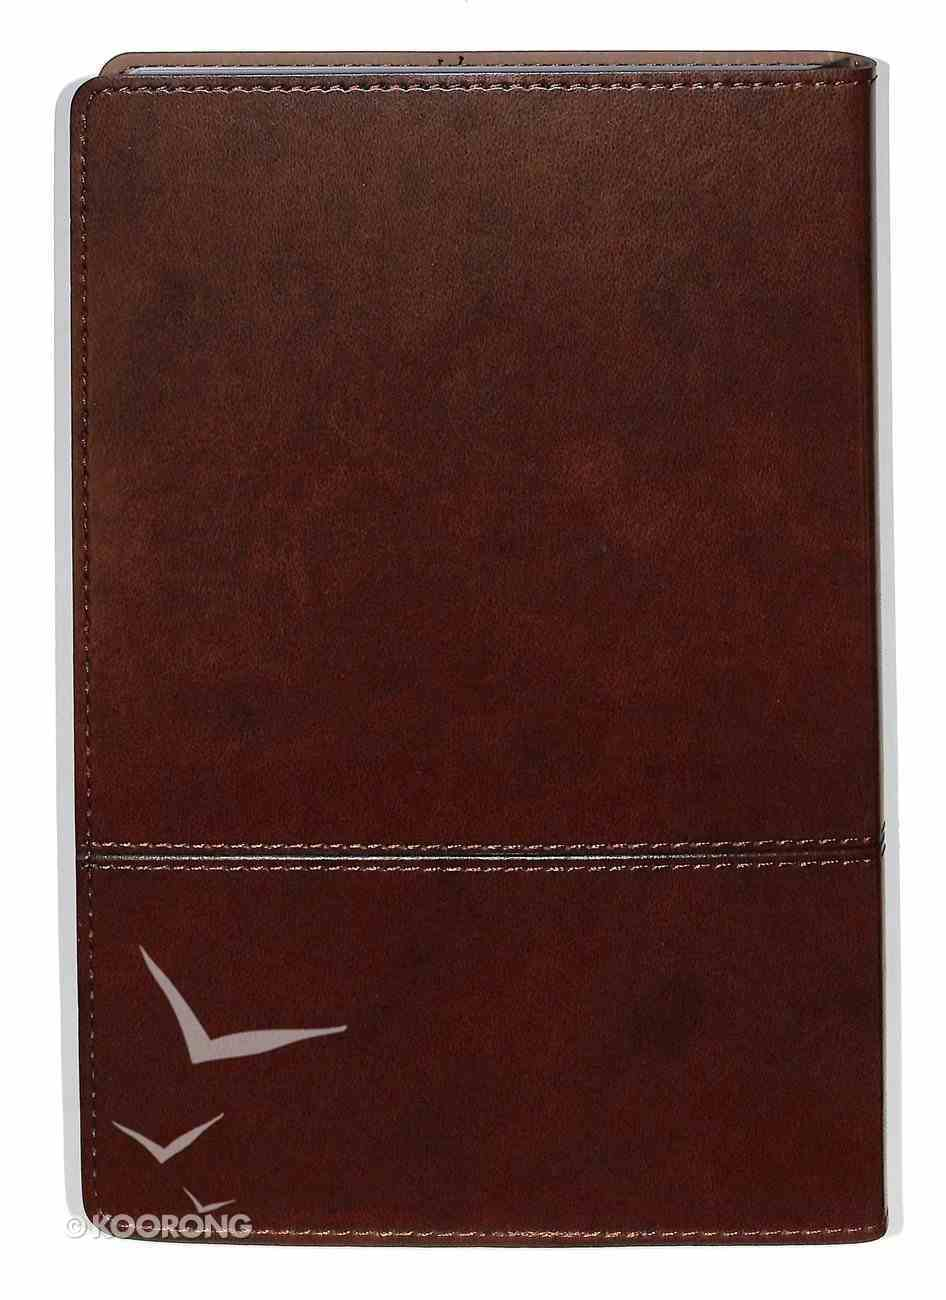 Journal: Trust, Dark Brown Flexcover Luxleather Imitation Leather